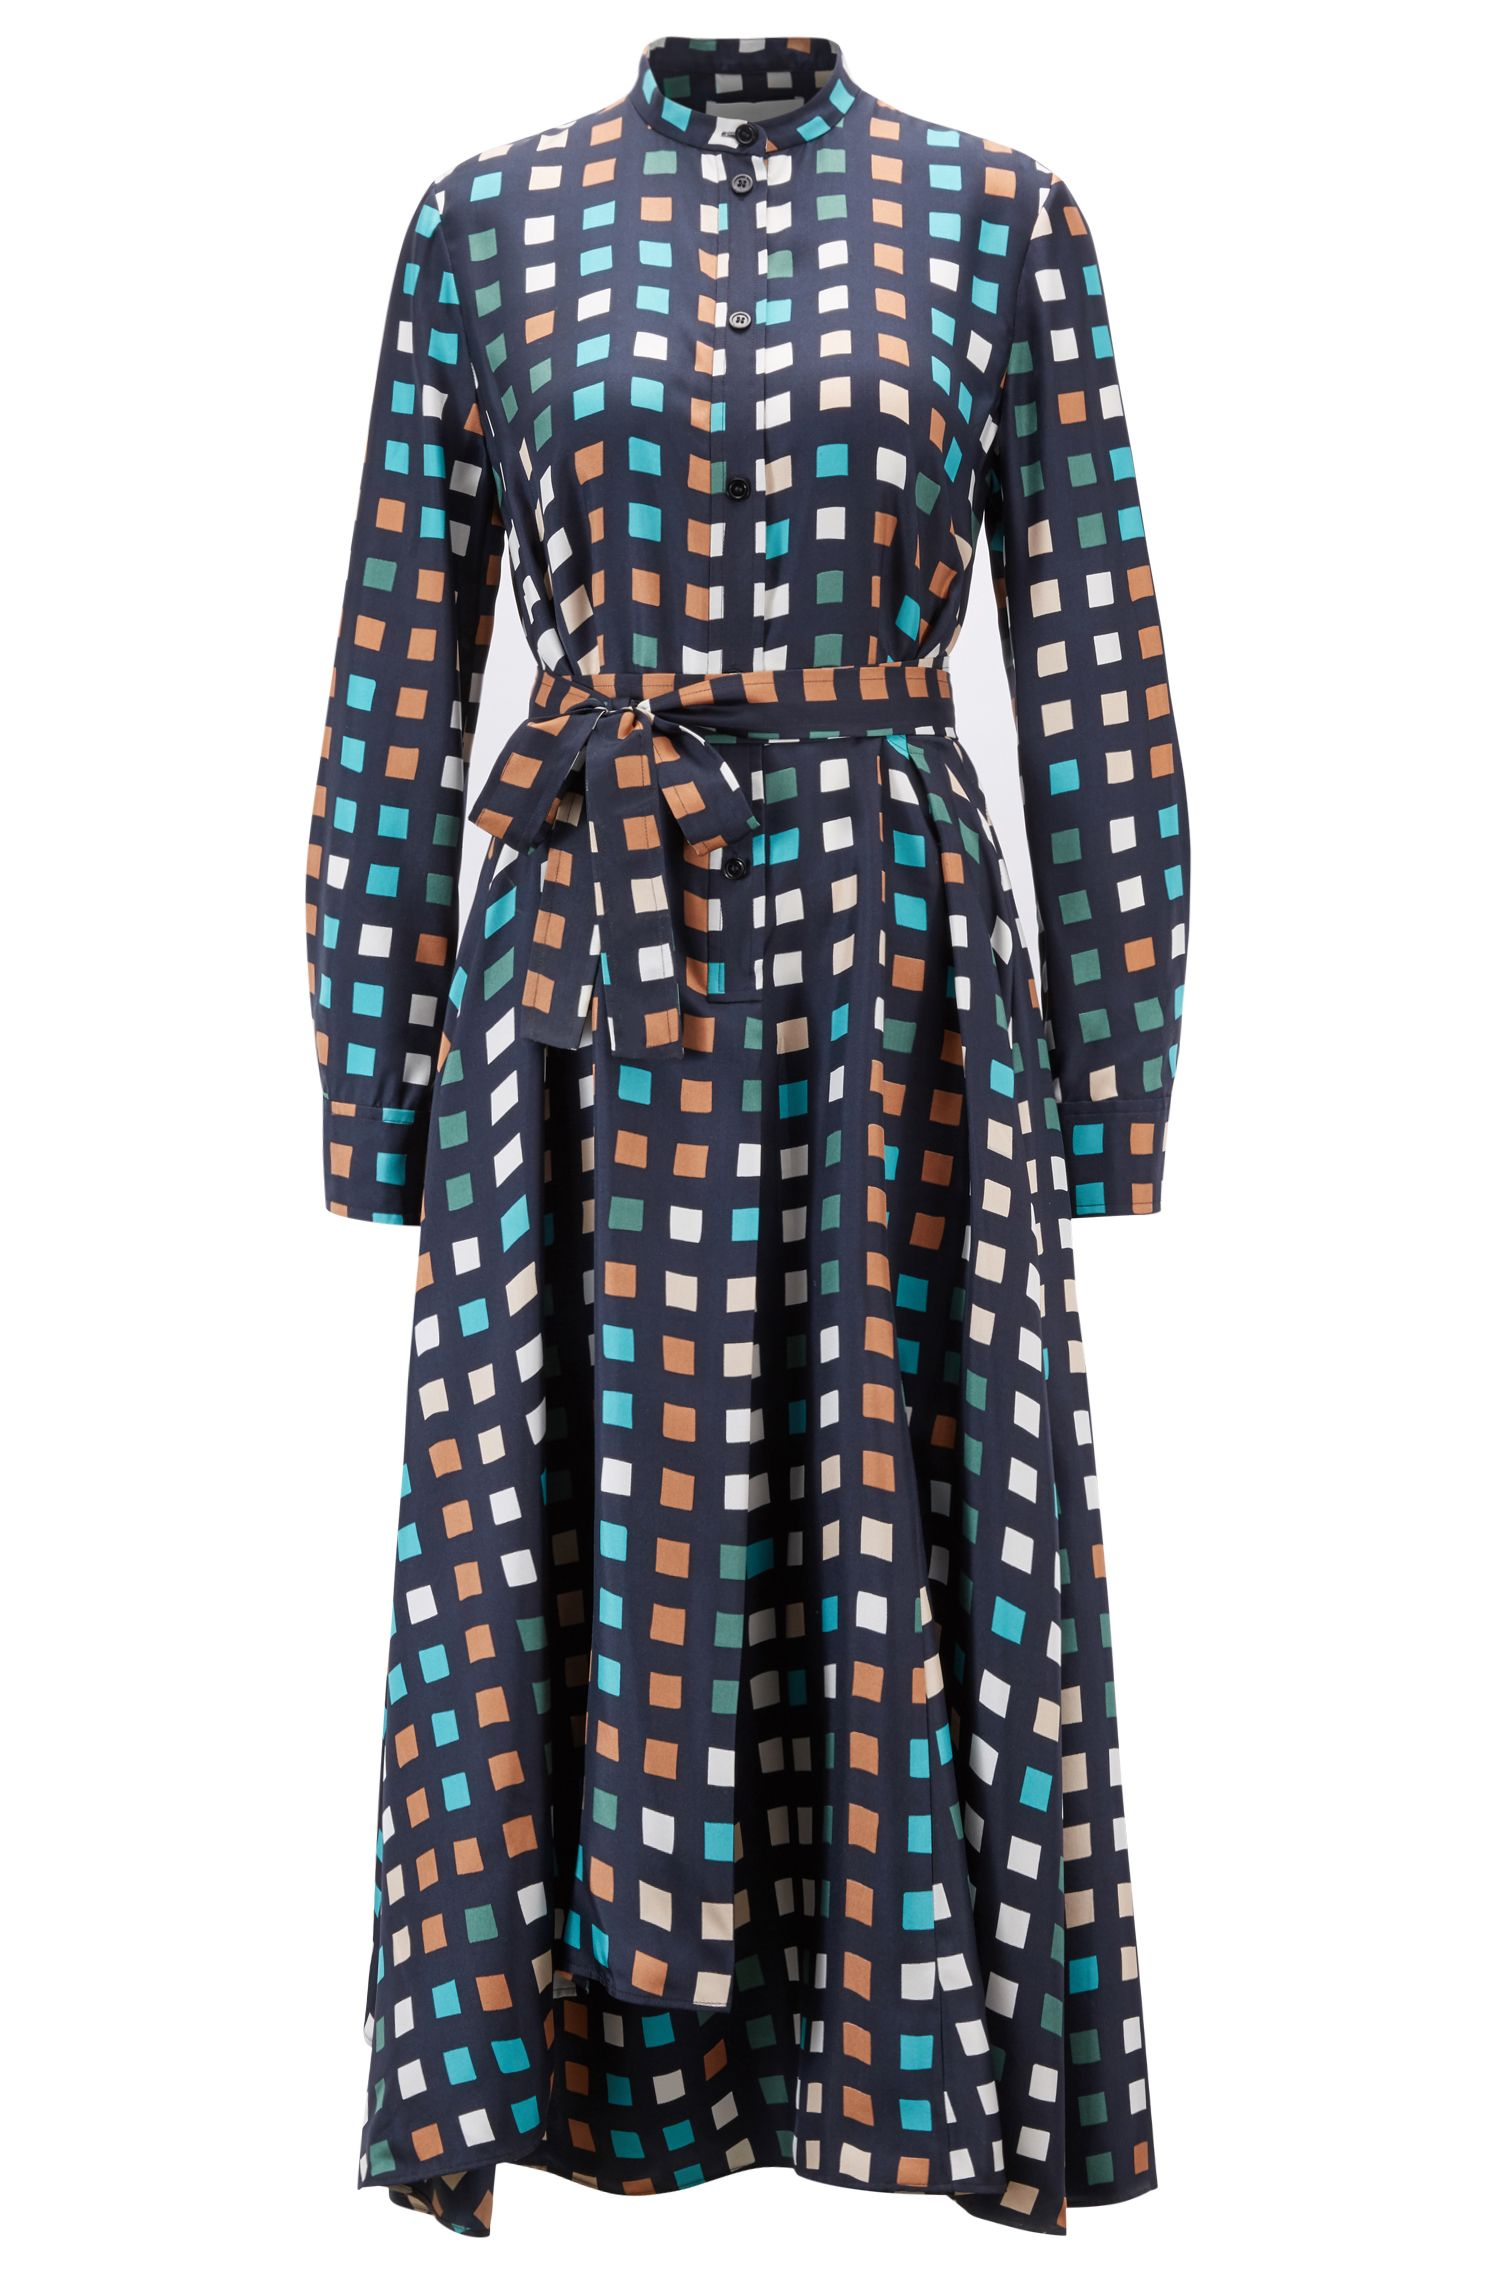 Multi-coloured cube-print shirt dress in silk twill, Patterned